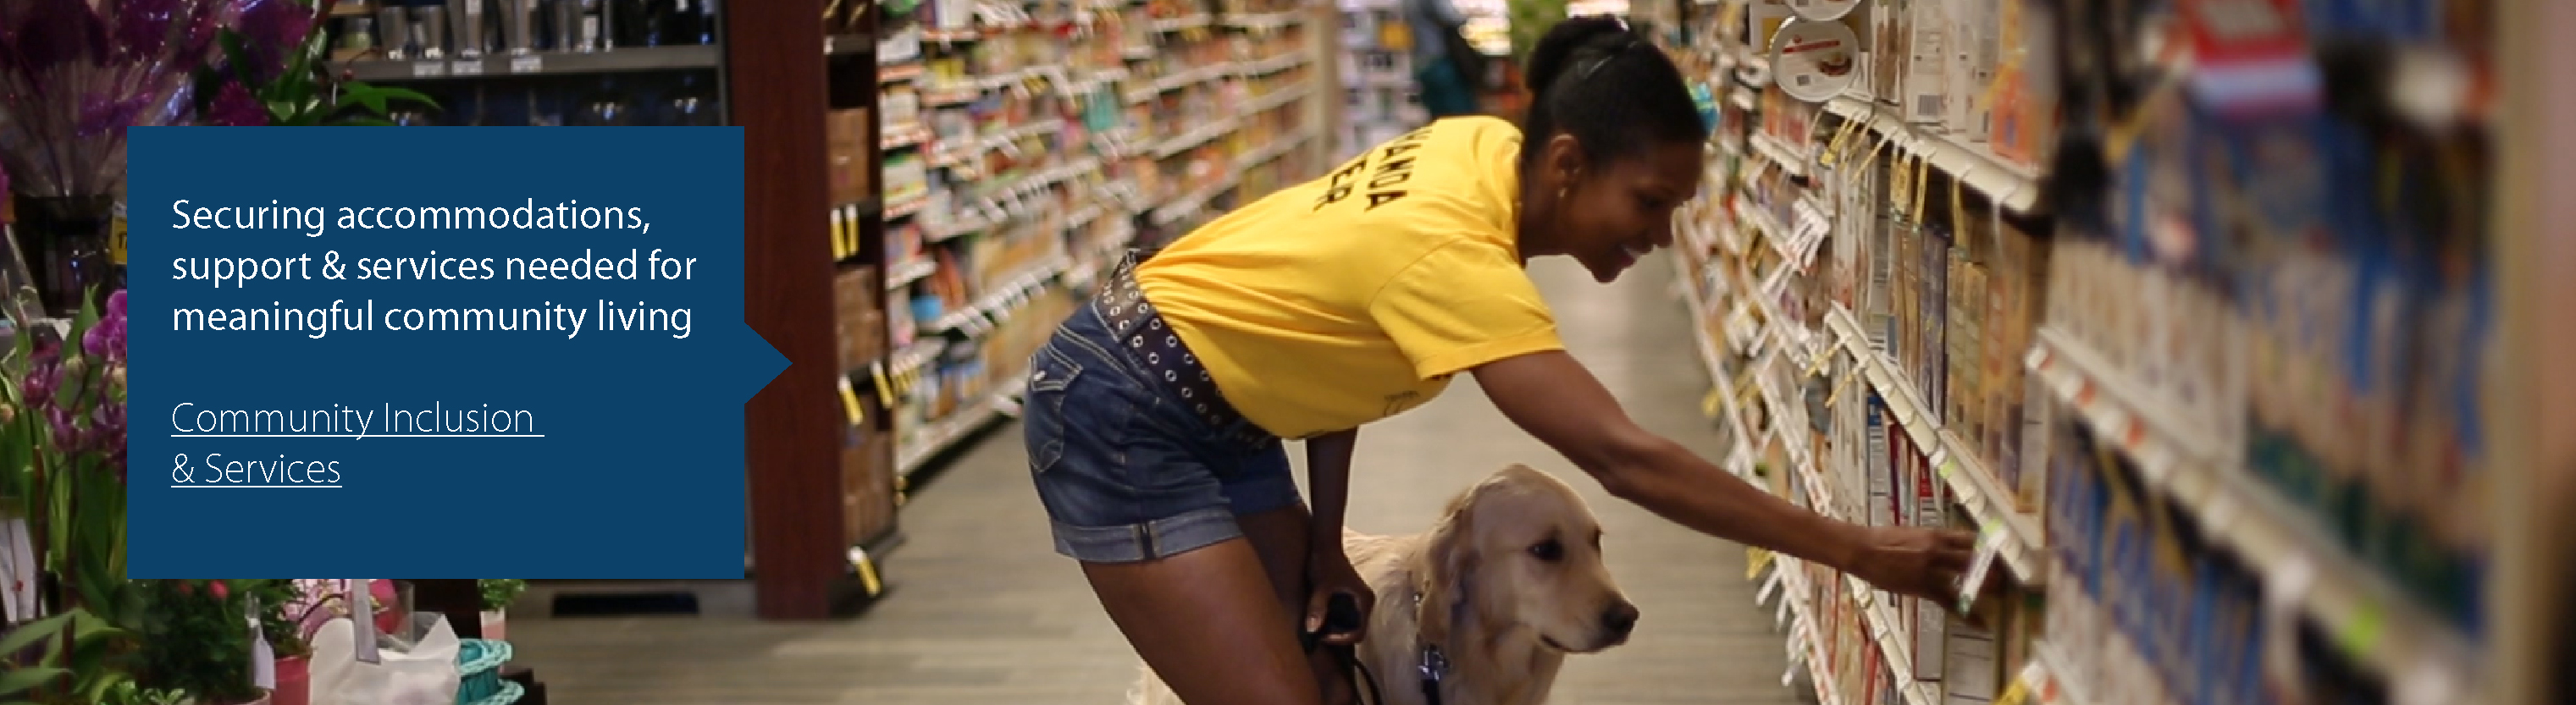 Securing accommodations, support, and services needed for meaningful community living. Community Inclusion and Services Program. A woman and her service dog reach for an item on a gorcery store shelf.